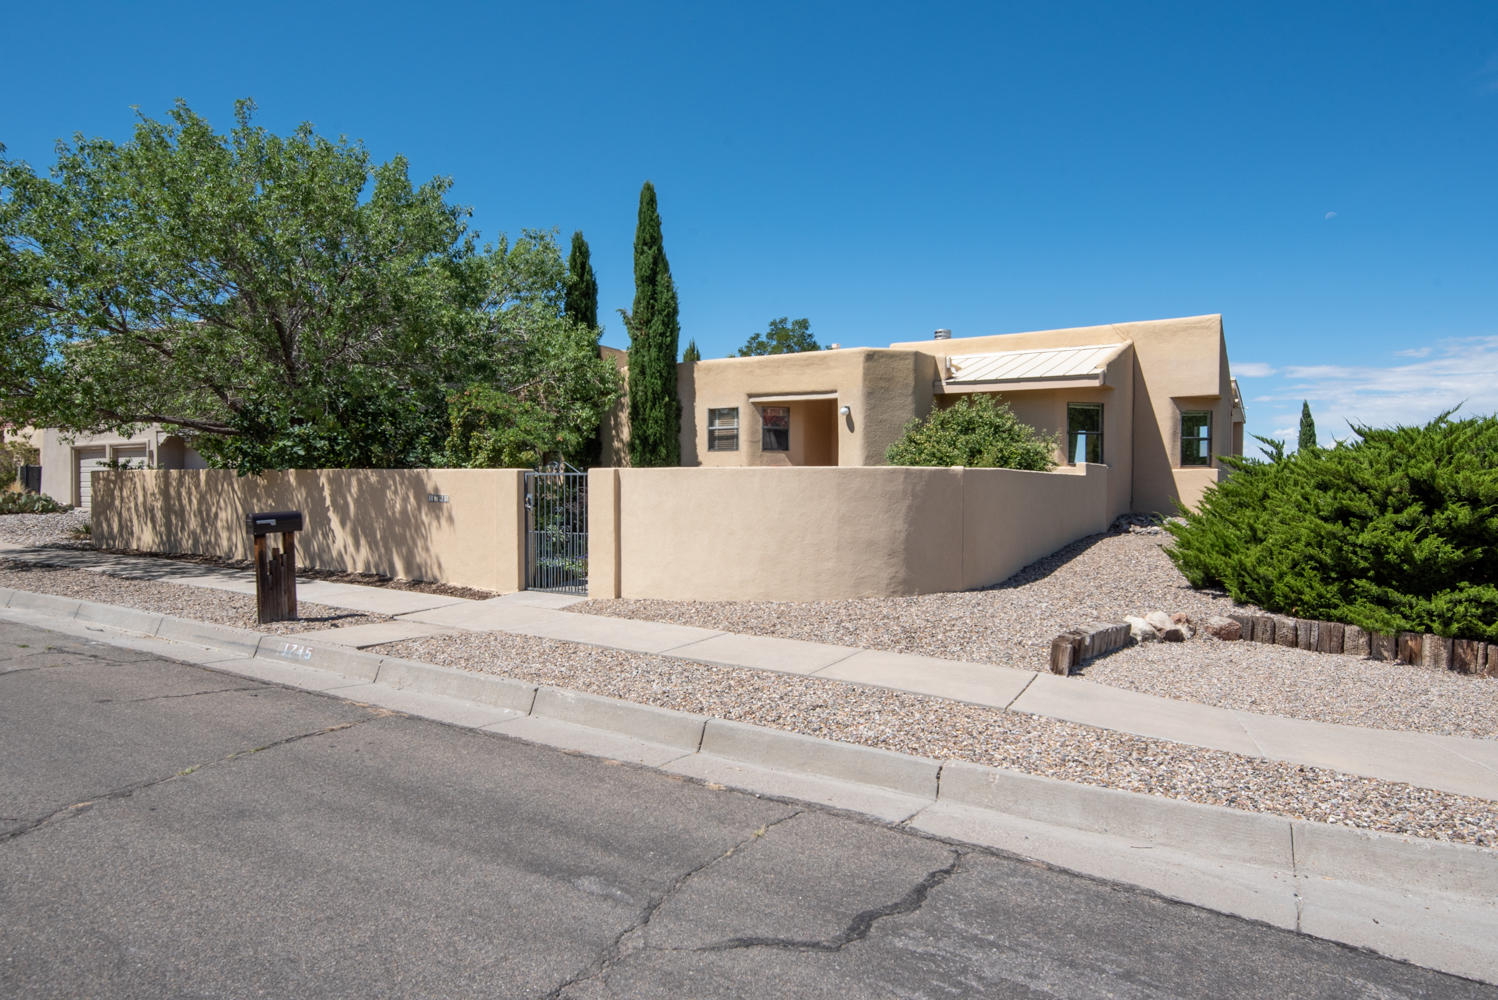 Stunning City and Mountain Views from this fantastic corner lot. Mature trees and landscaping, flagstone pathway and gated courtyard. Light, bright and open concept floor plan with a huge covered balcony off the family room boasting amazing views! 3 bedrooms with the master on the main level. Kitchen features electric cooktop built in , some stainless steel appliances, (all convey)  island and updated cabinetry. Tons of natural light from skylights. Owner suite features private balcony access, fireplace, double sinks, and walk-in closet. 2 car garage, wet bar, refrigerated air and so much more you have to see. Some furniture available to purchase (master bed frame, dining room table, rug)